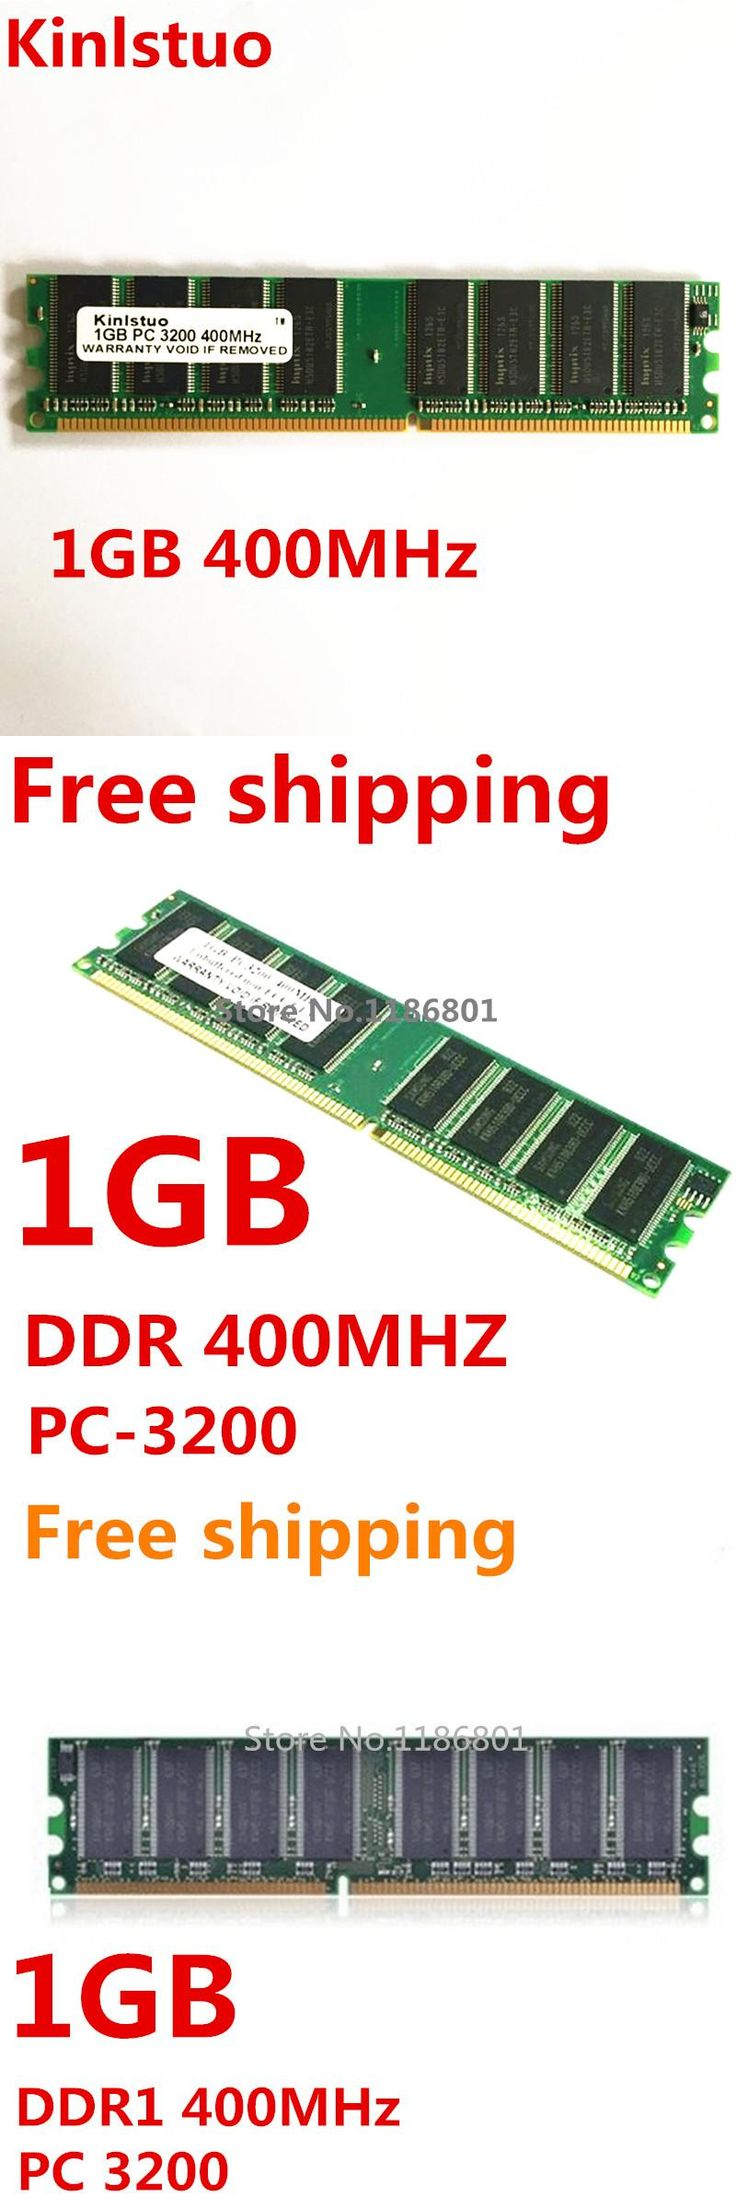 Brand New Sealed  DDR1  1GB 400MHz PC-3200  184PIN Desktop RAM   Memory (all compatible) 1gb ddr 400mhz Wholesale  Free shipping